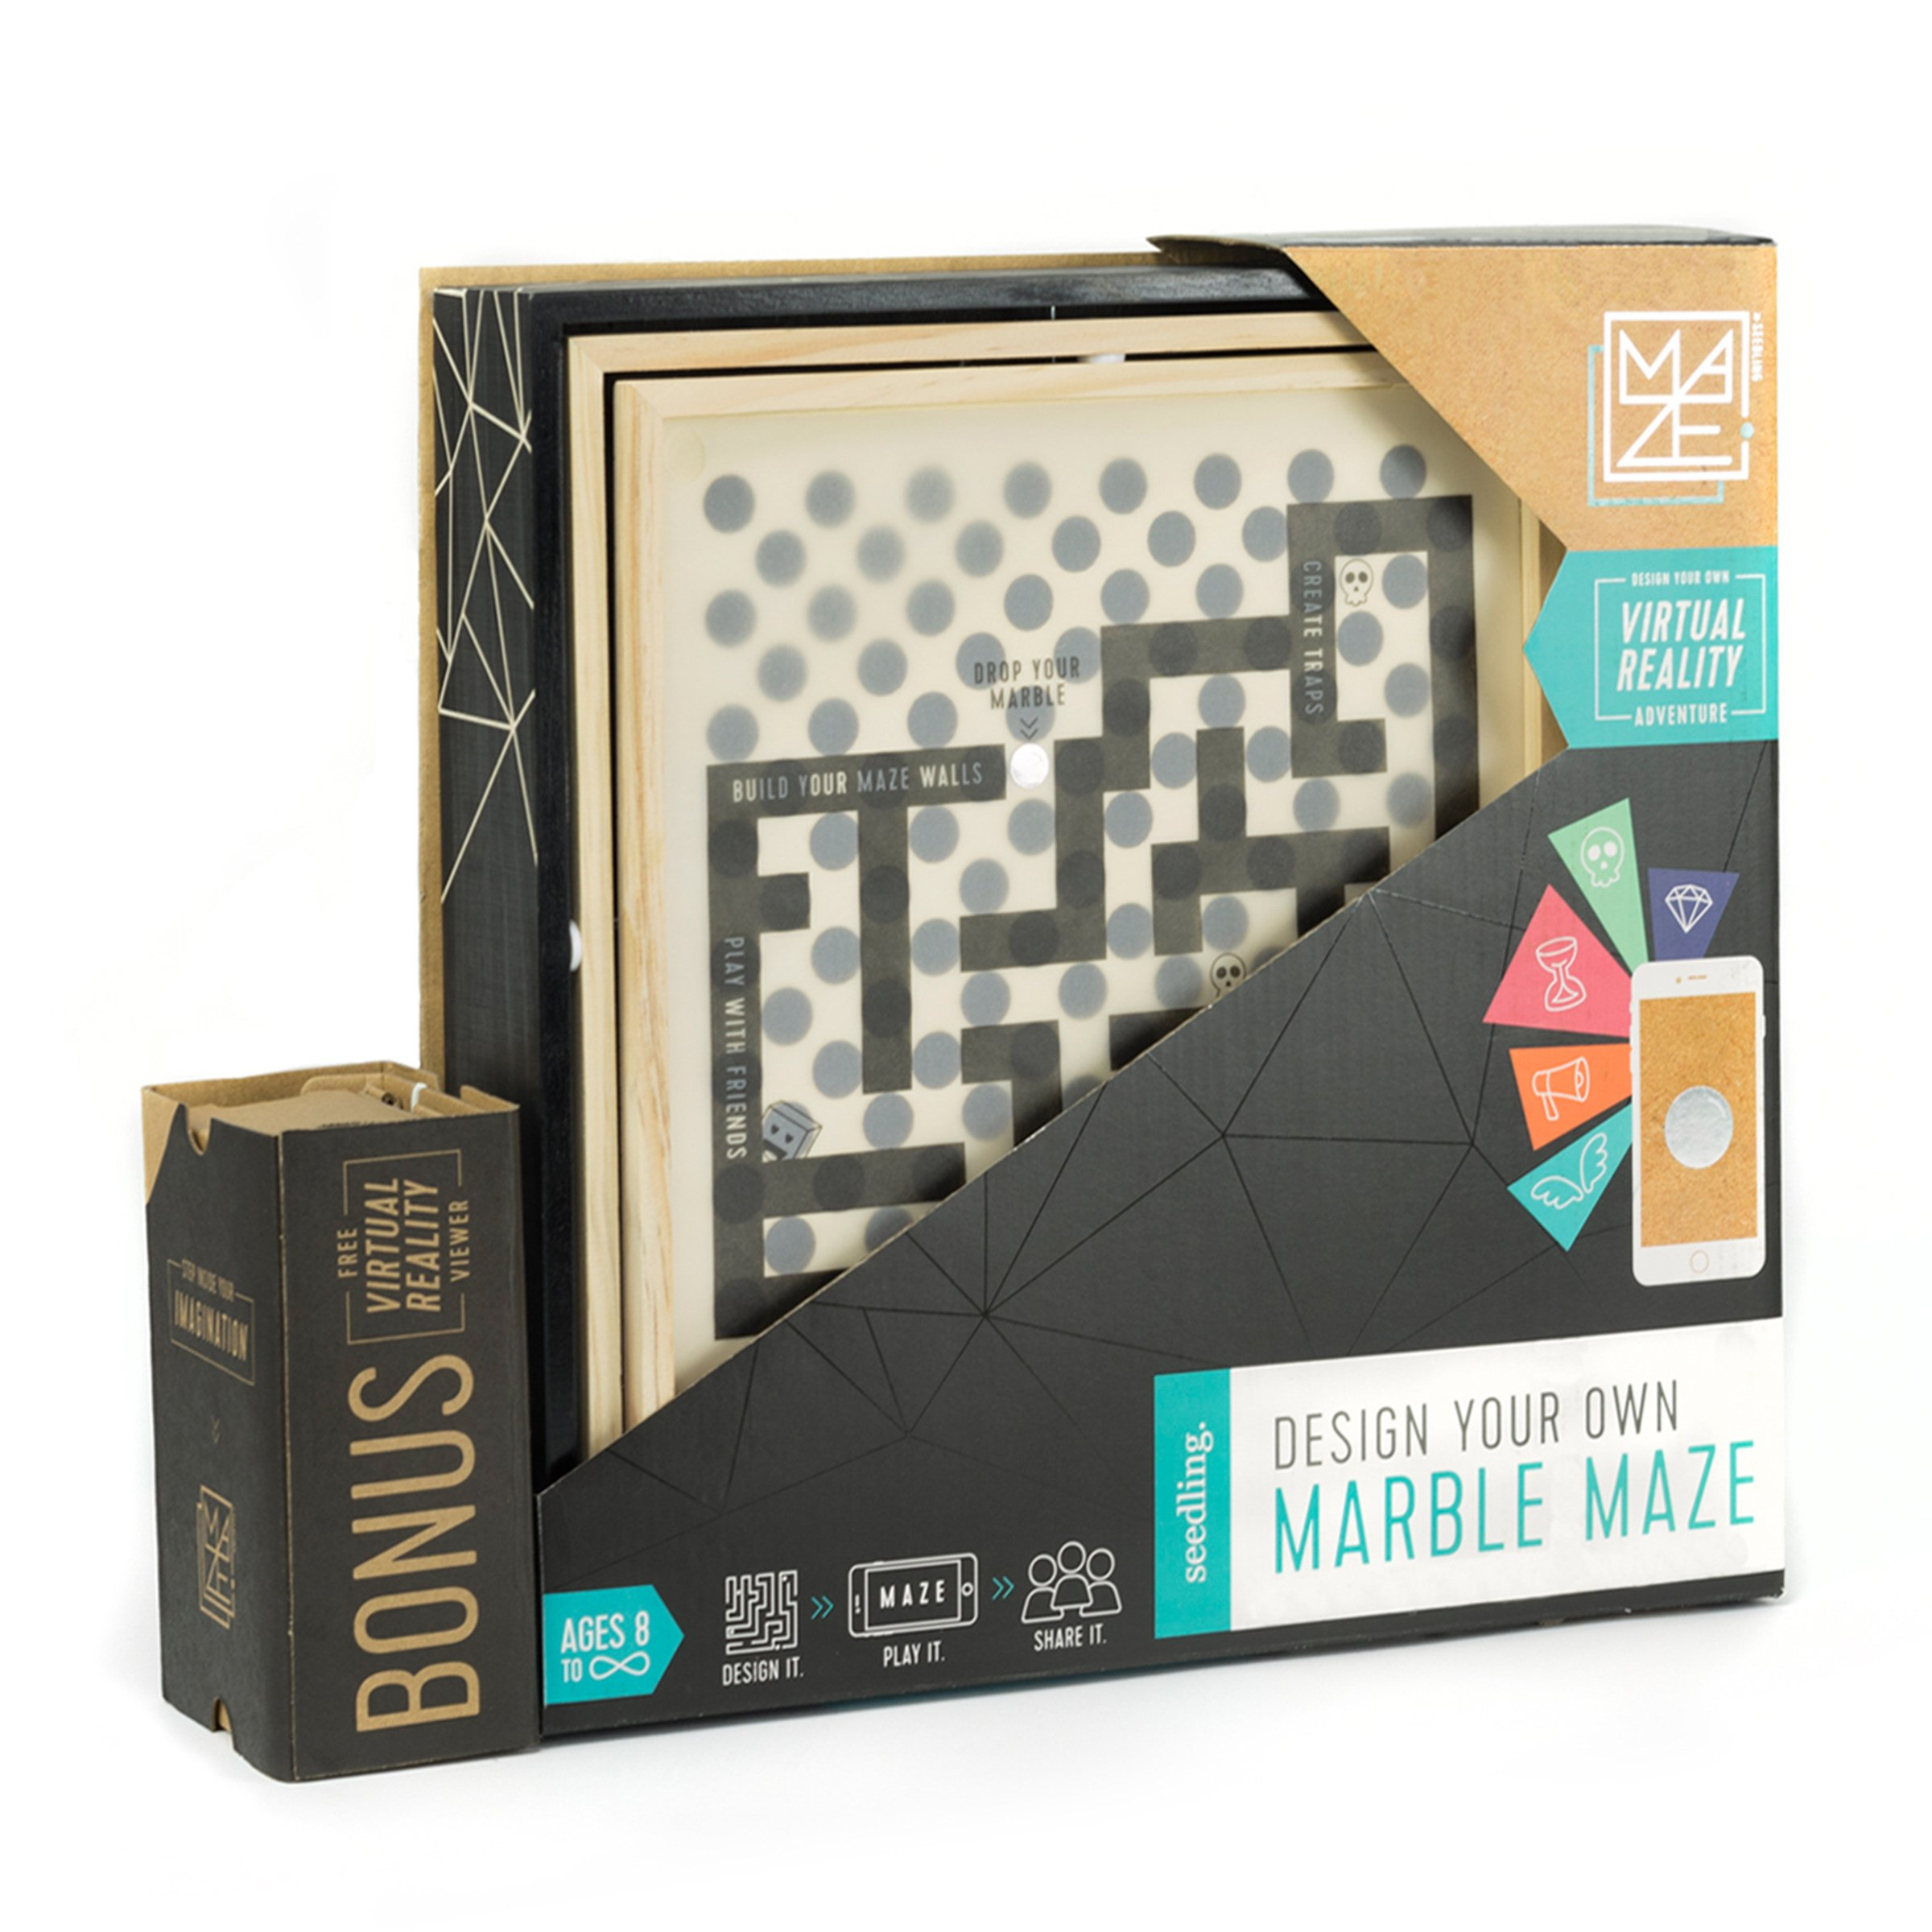 Seedling Design Your Own Marble Maze Design Your Own